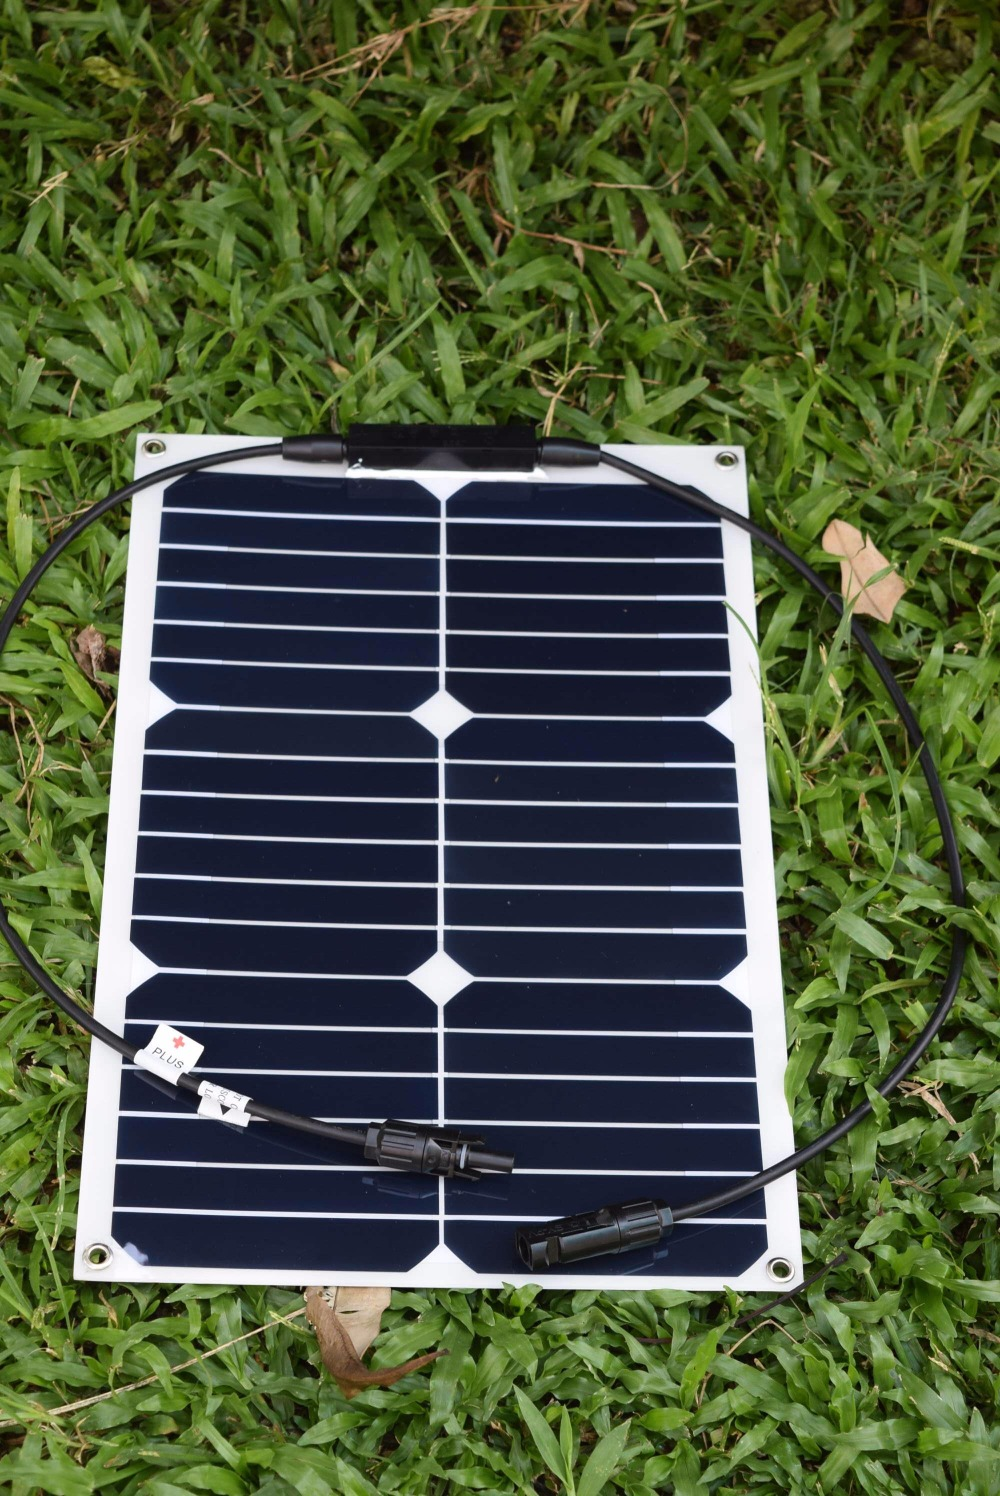 Solarparts 2x18W flexible solar panel solar module 125*125mm solar cell system 12V chargeabl battery boat yacht marine sun power(China (Mainland))